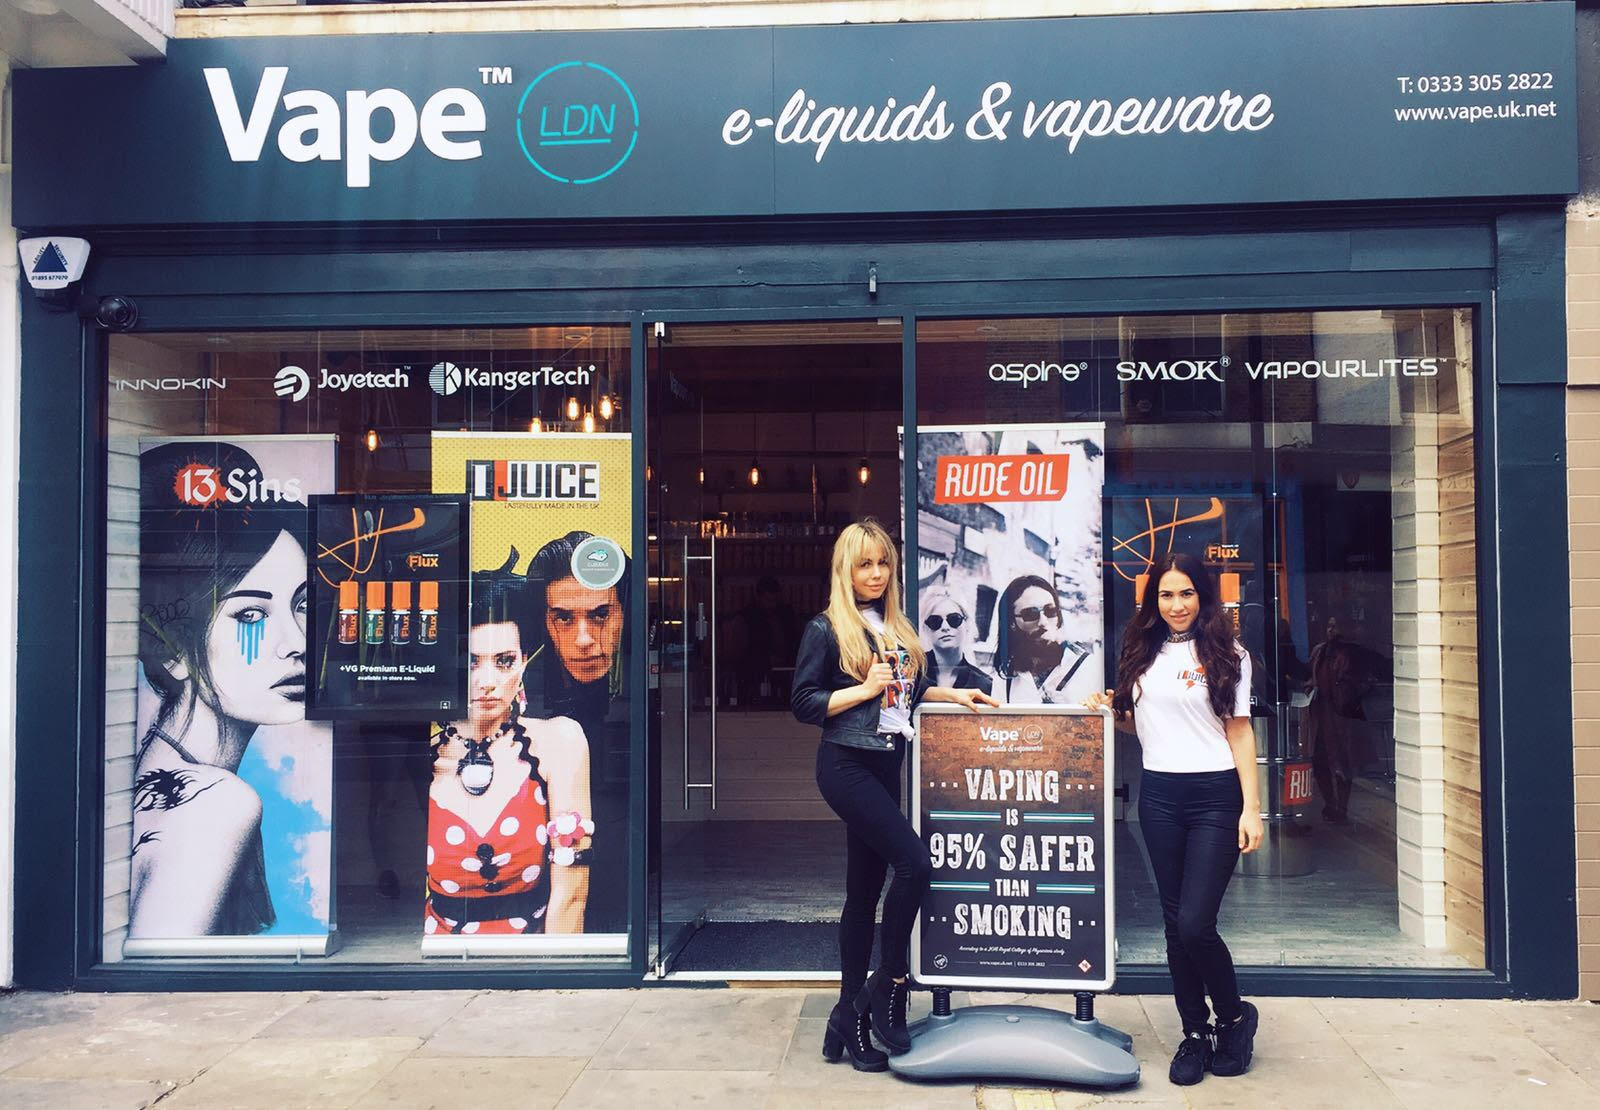 vape roadshow london 2